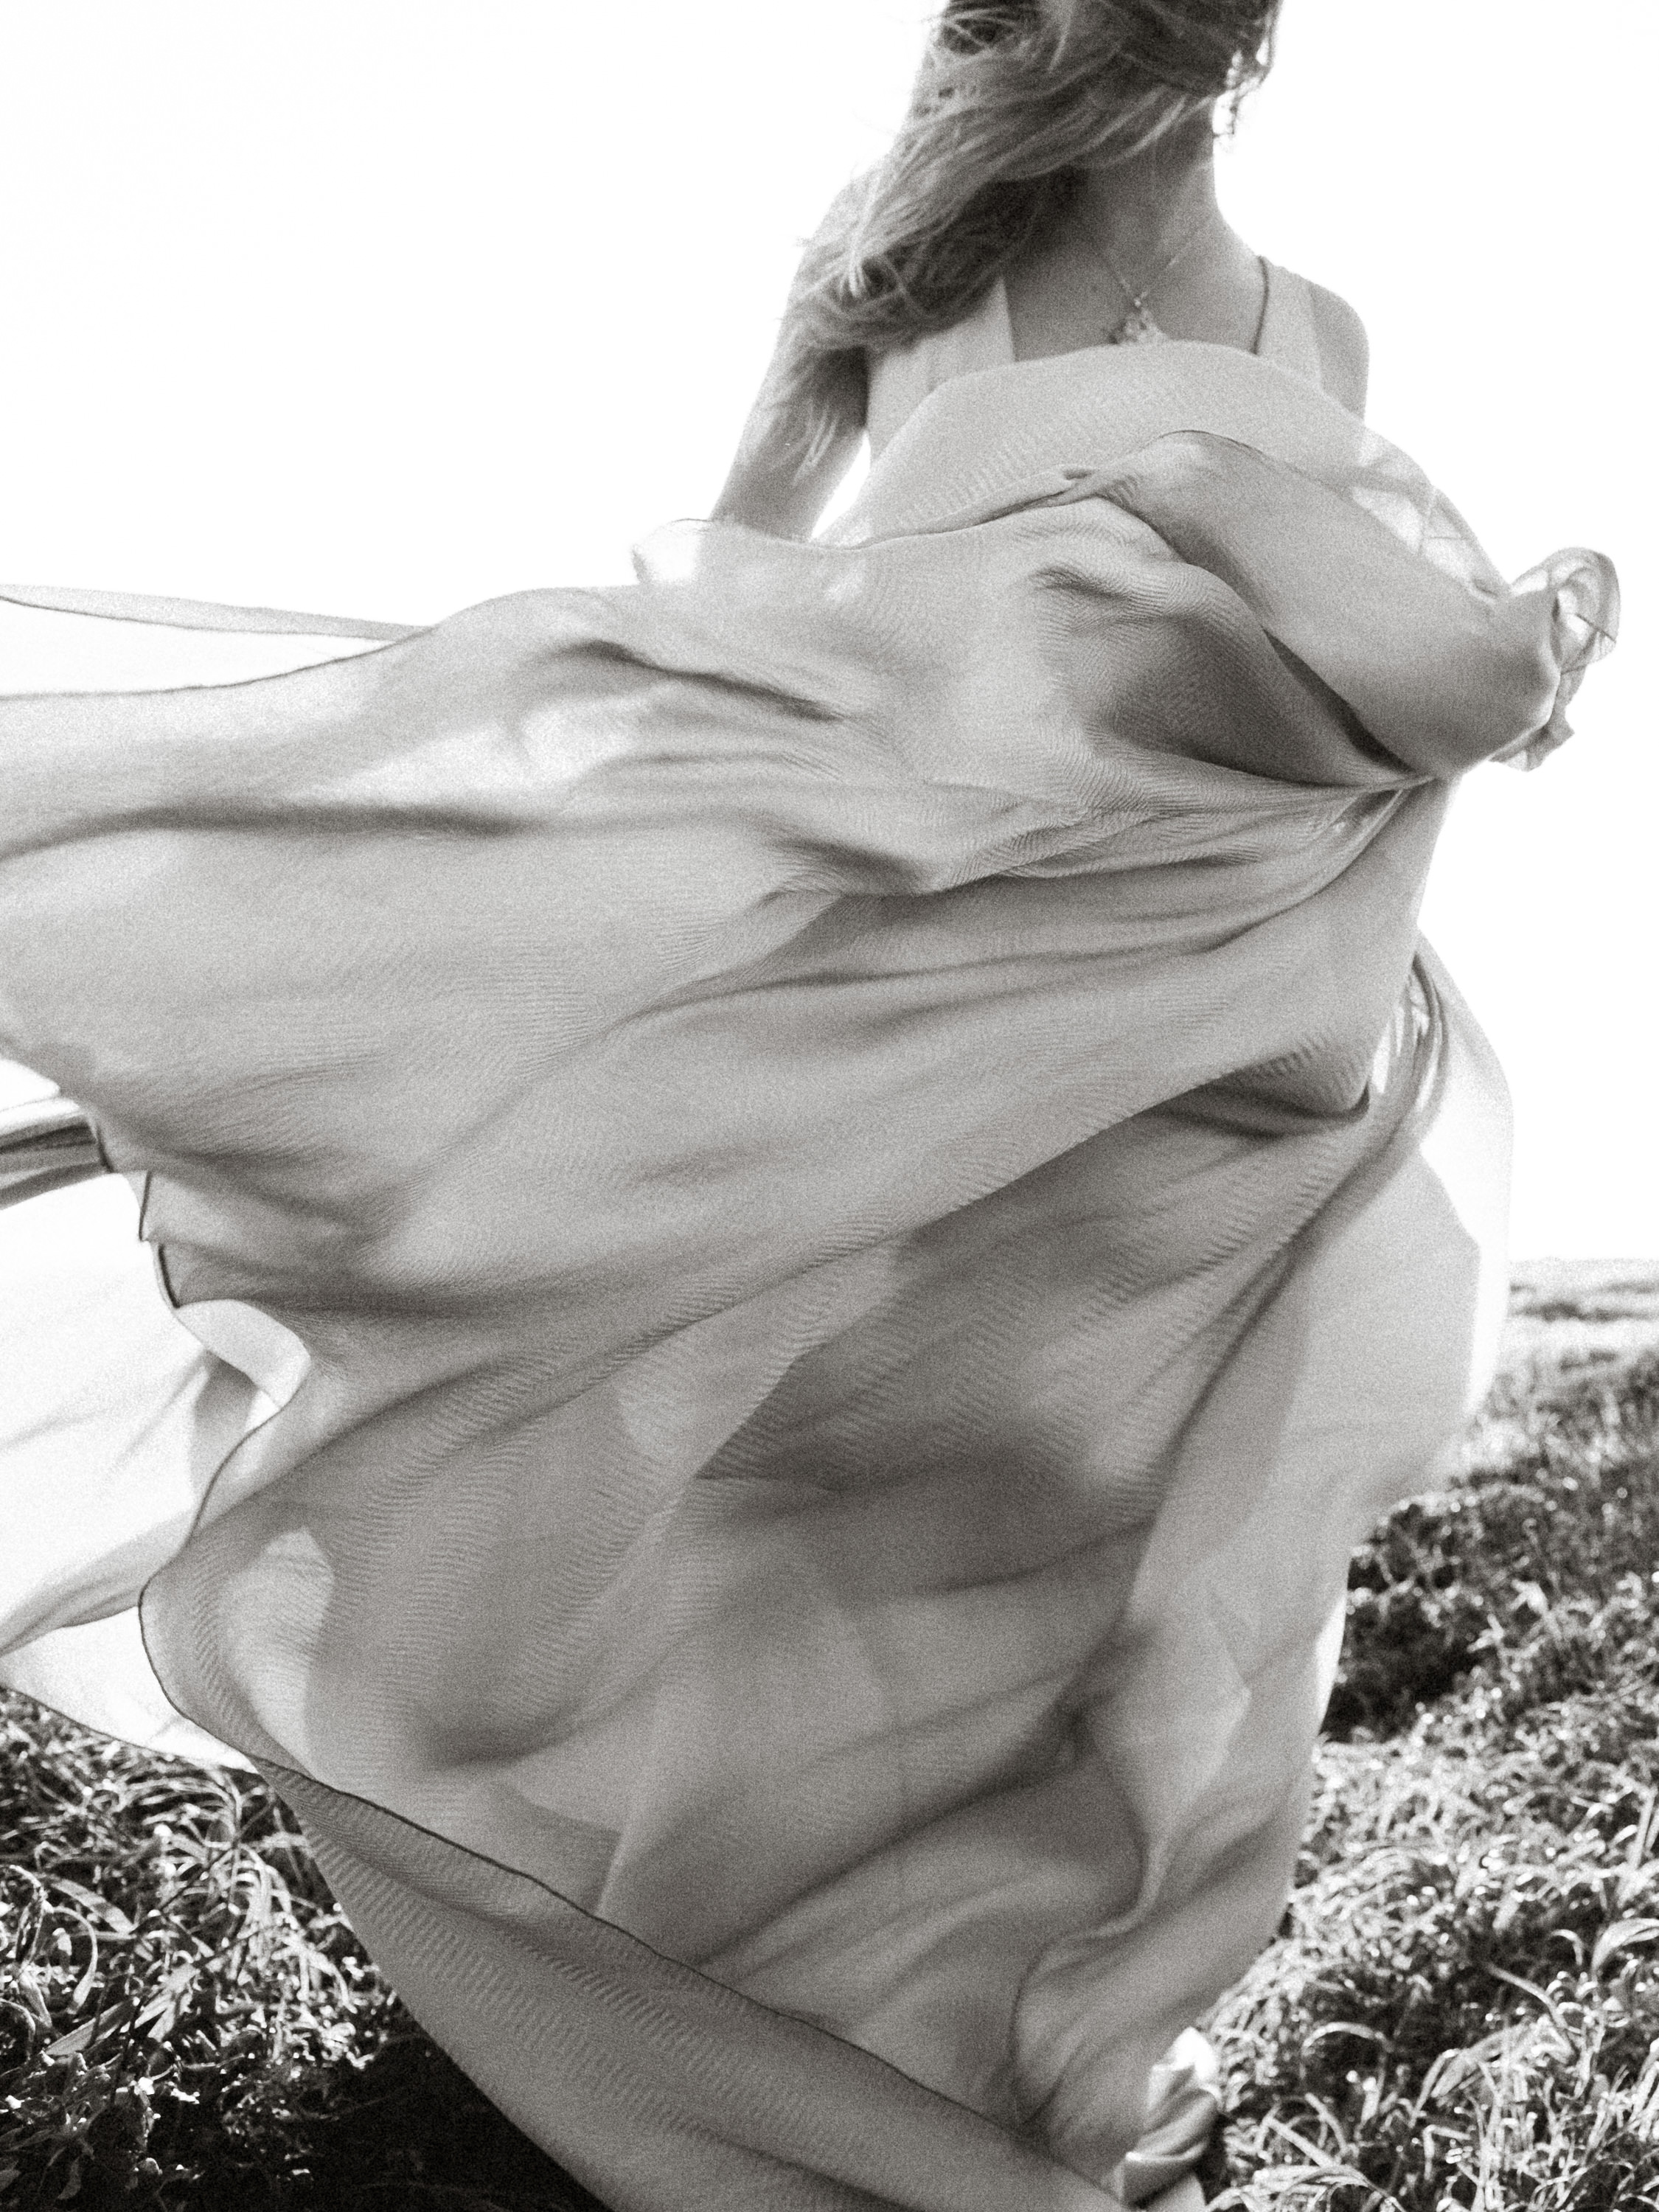 Bride's gown flowing in the wind - photo by Joel and Justyna